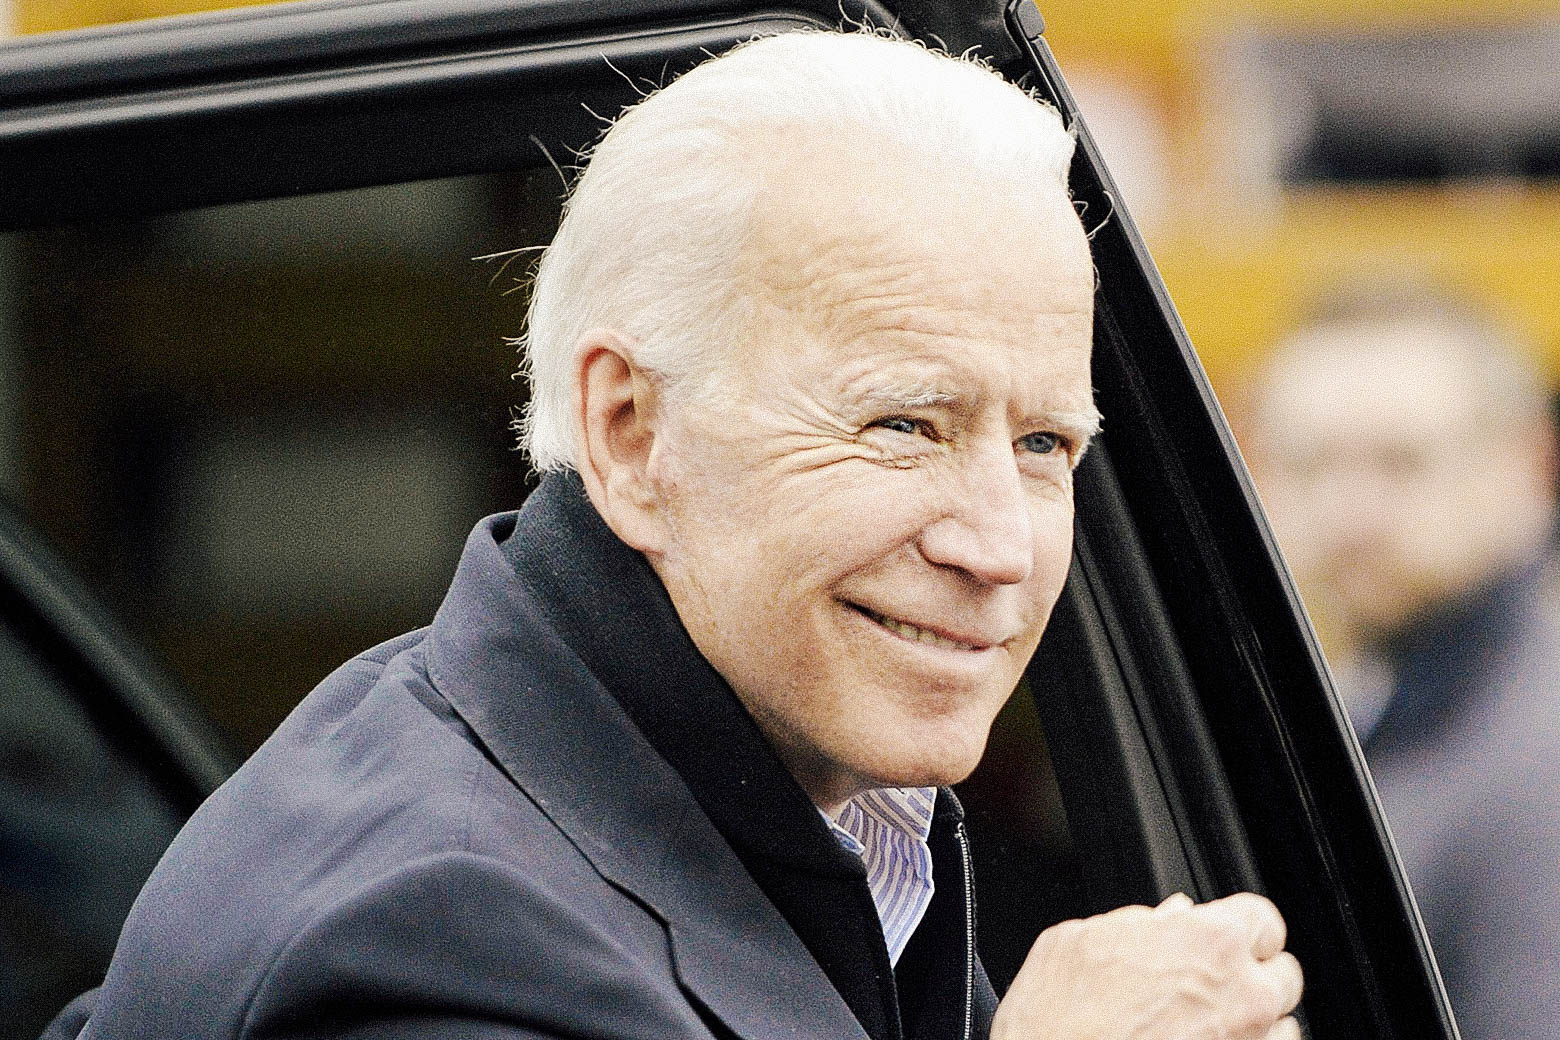 Joe Biden arrives at a  rally organized by UFCW Union members to support Stop and Shop employees on strike throughout the region on Thursday.